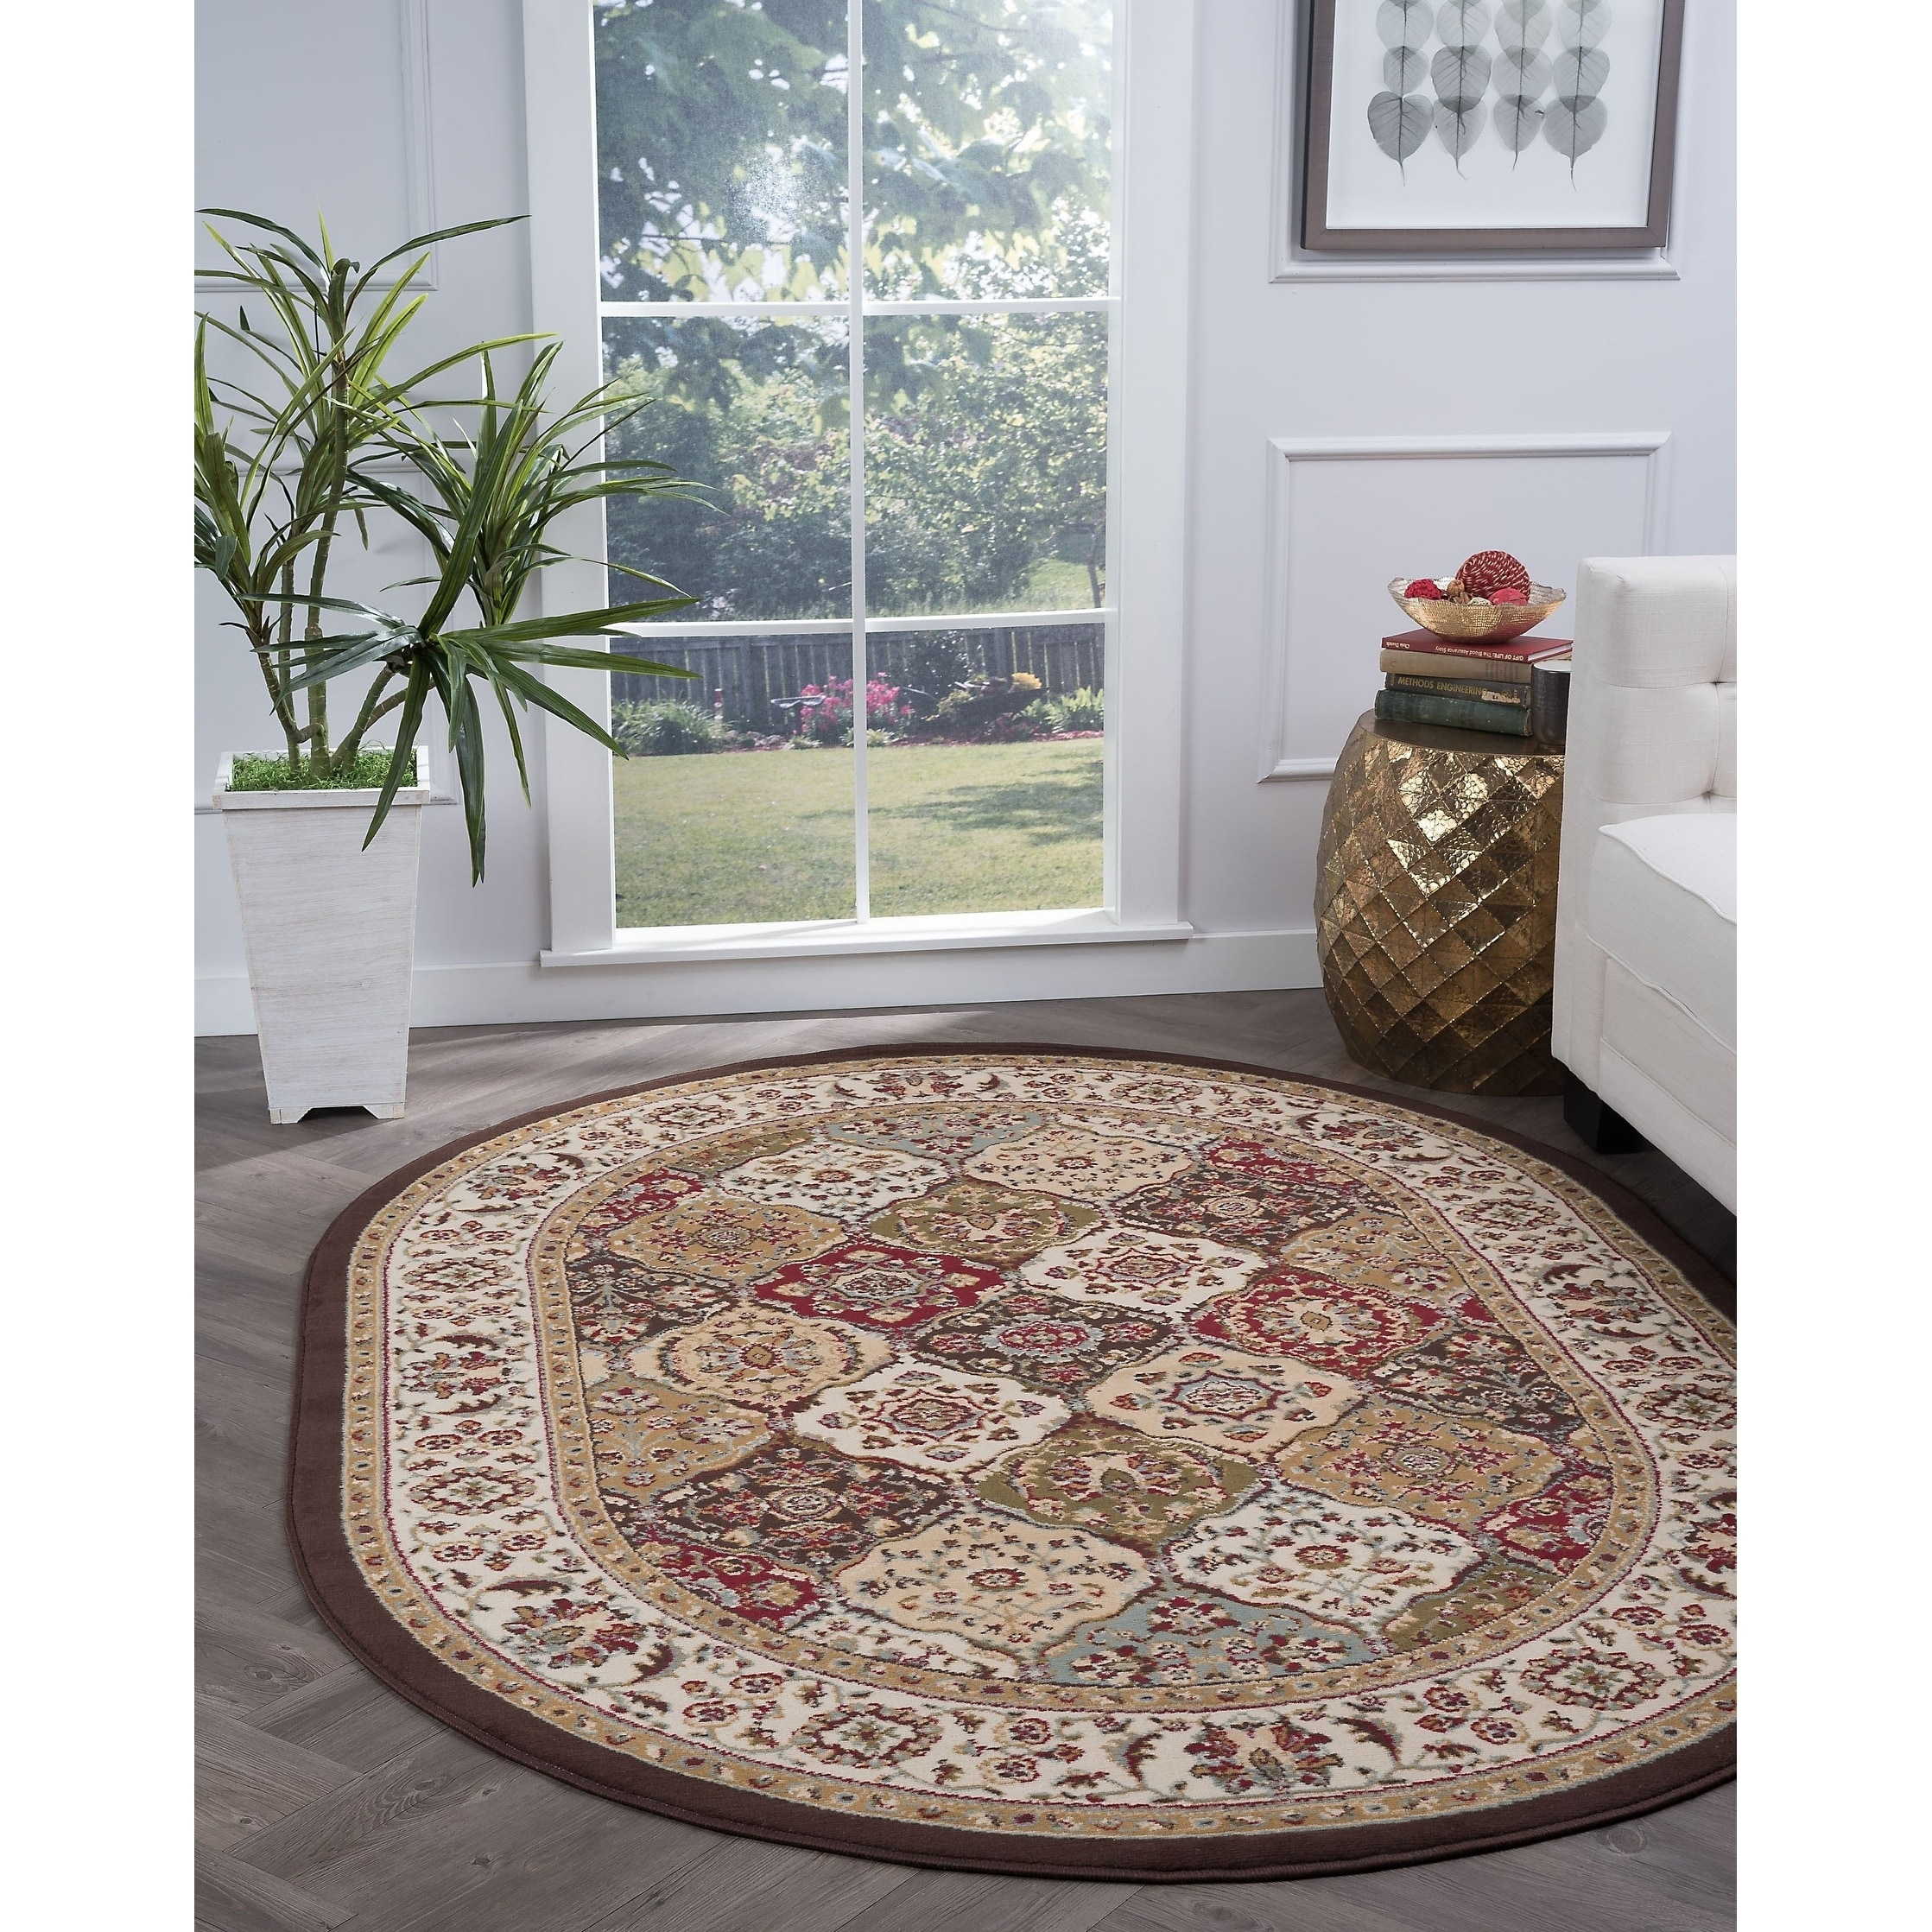 Alise Rugs  Lagoon Transitional Oriental Oval Area Rug - multi - 5'3 x 7'3